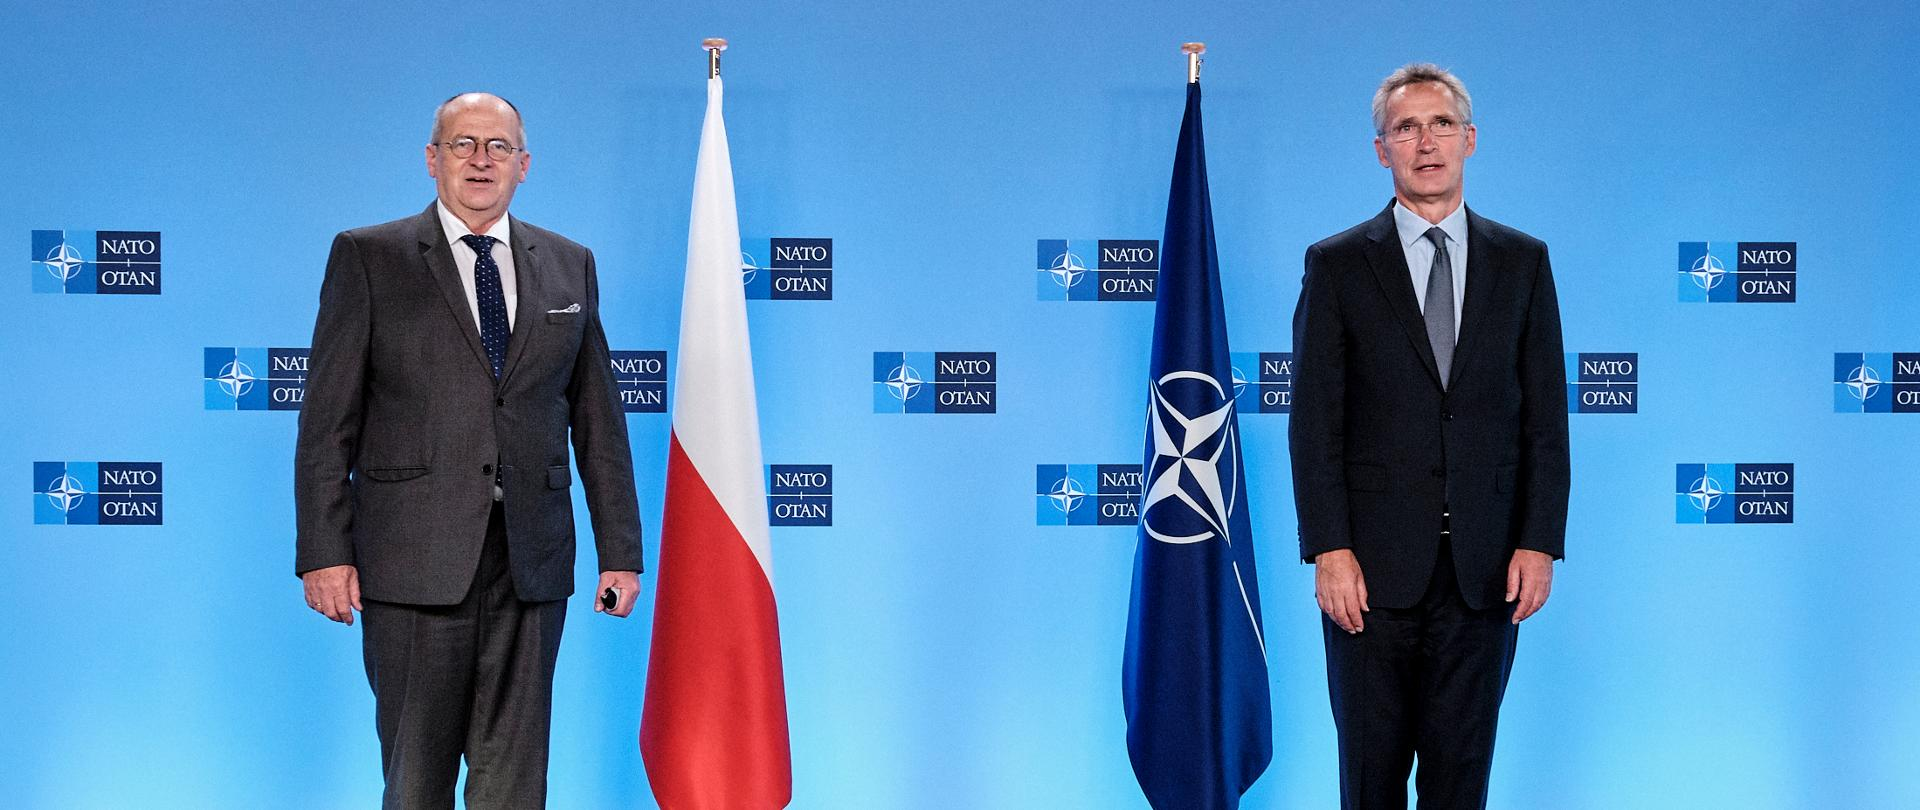 Meeting of Foreign Minister Zbigniew Rau with NATO Secretary General Jens Stoltenberg_21.09.2020